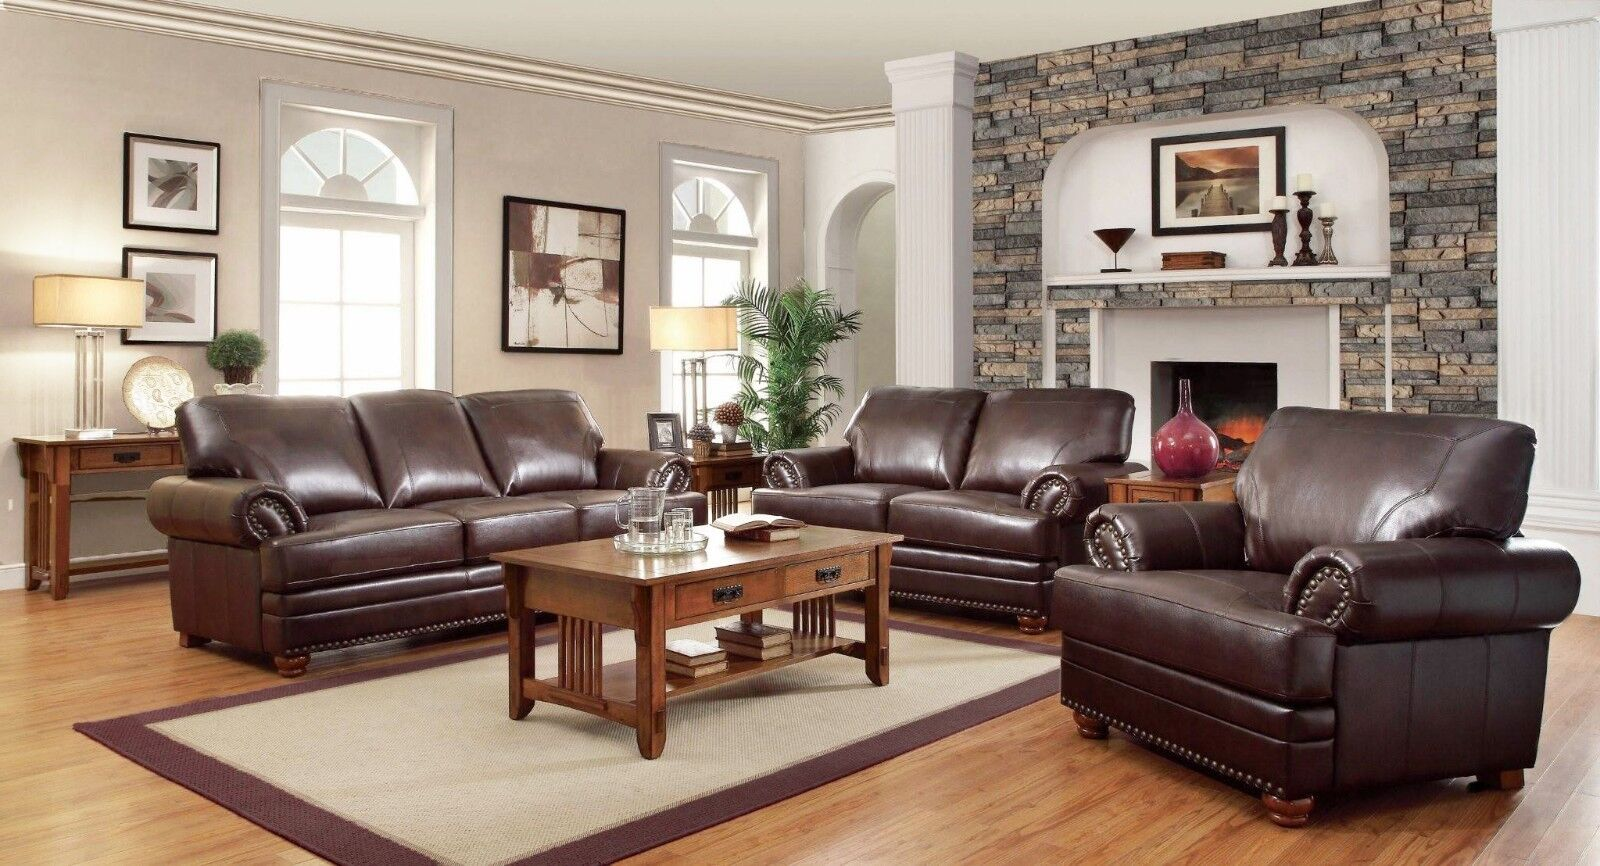 Traditional Brown Bonded Leather Sofa Loveseat Chair & Table 4pc ...